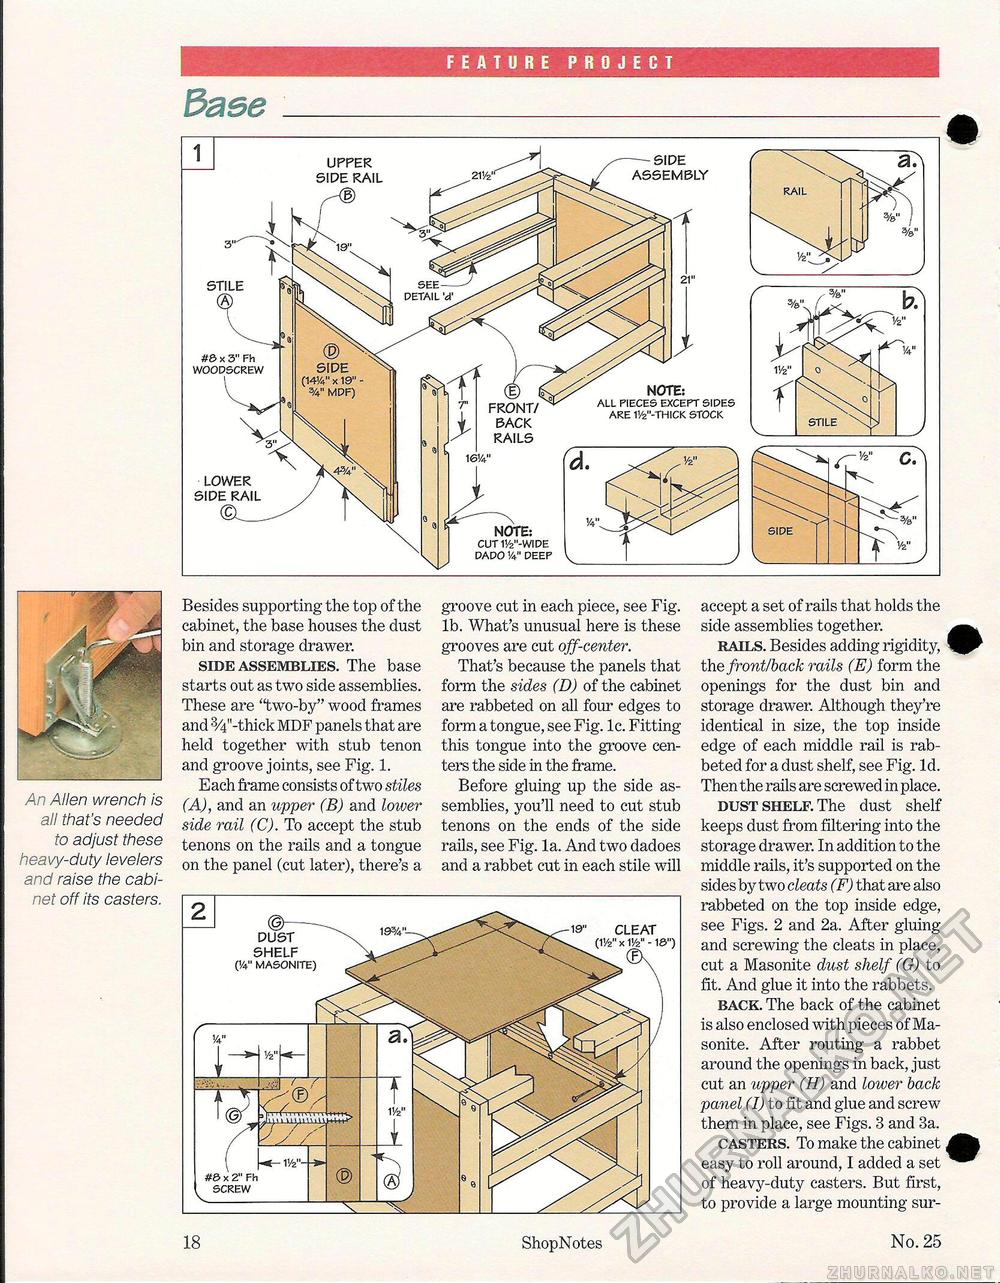 25 - Special Table Saw Issue, страница 18